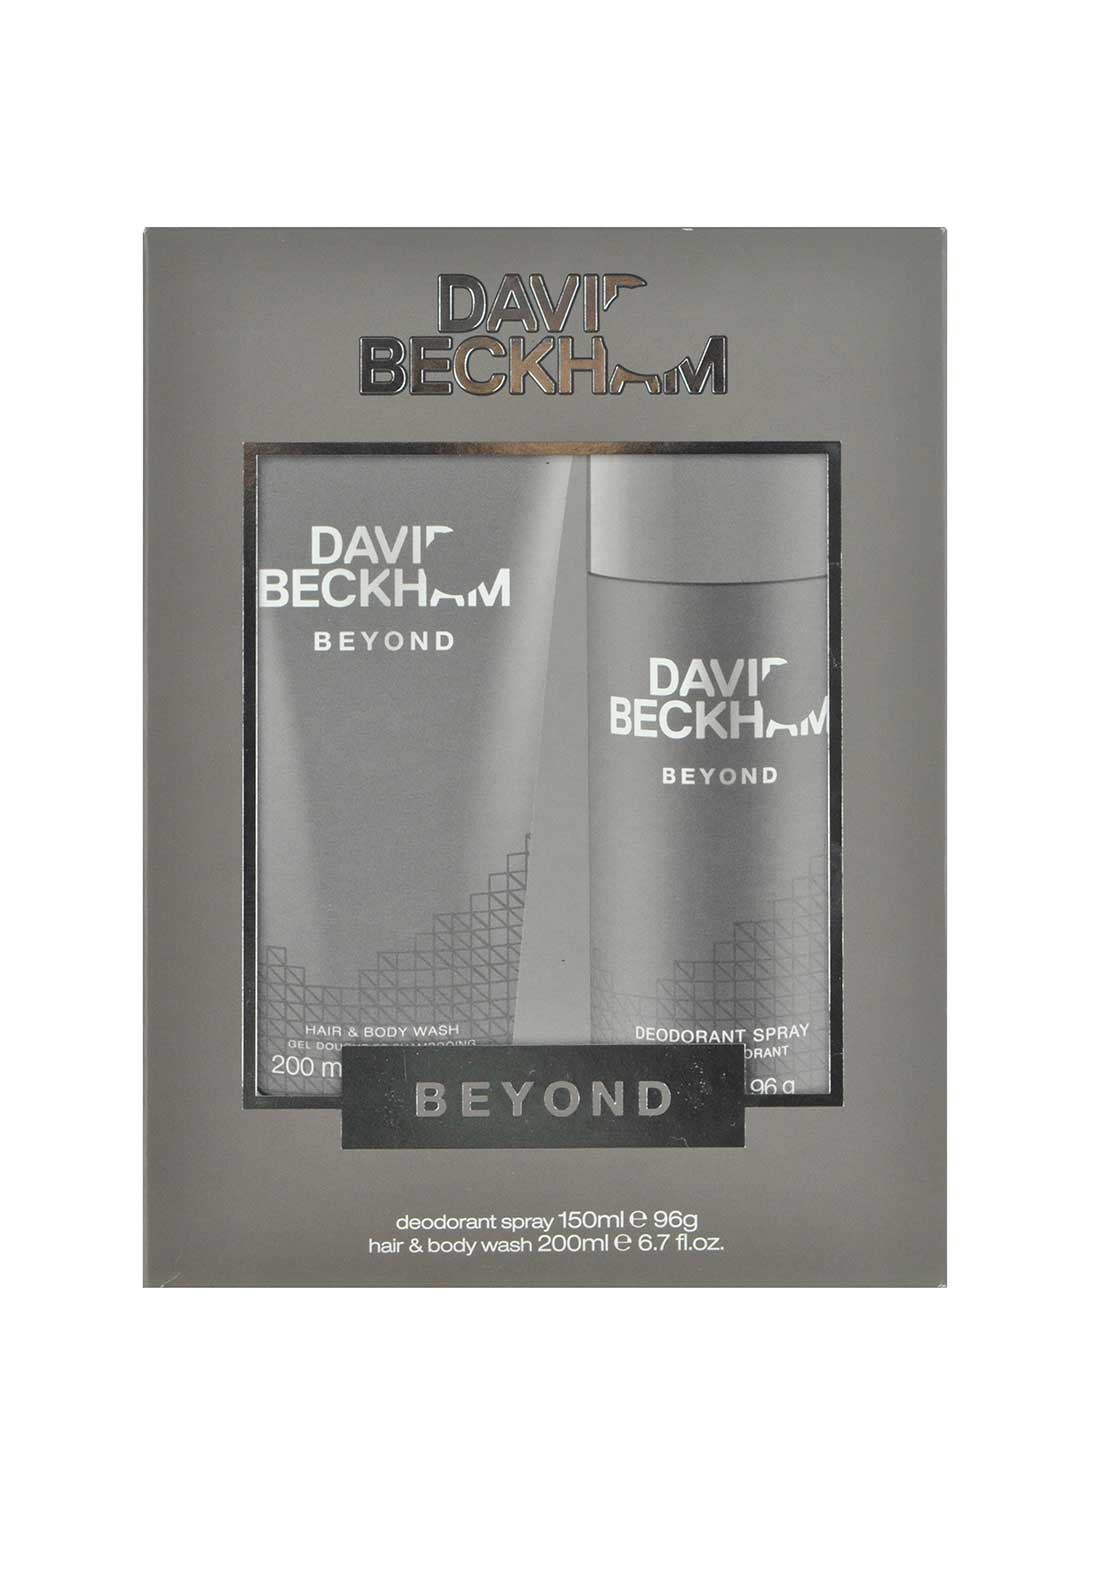 David Beckham Beyond Deodorant Gift Set